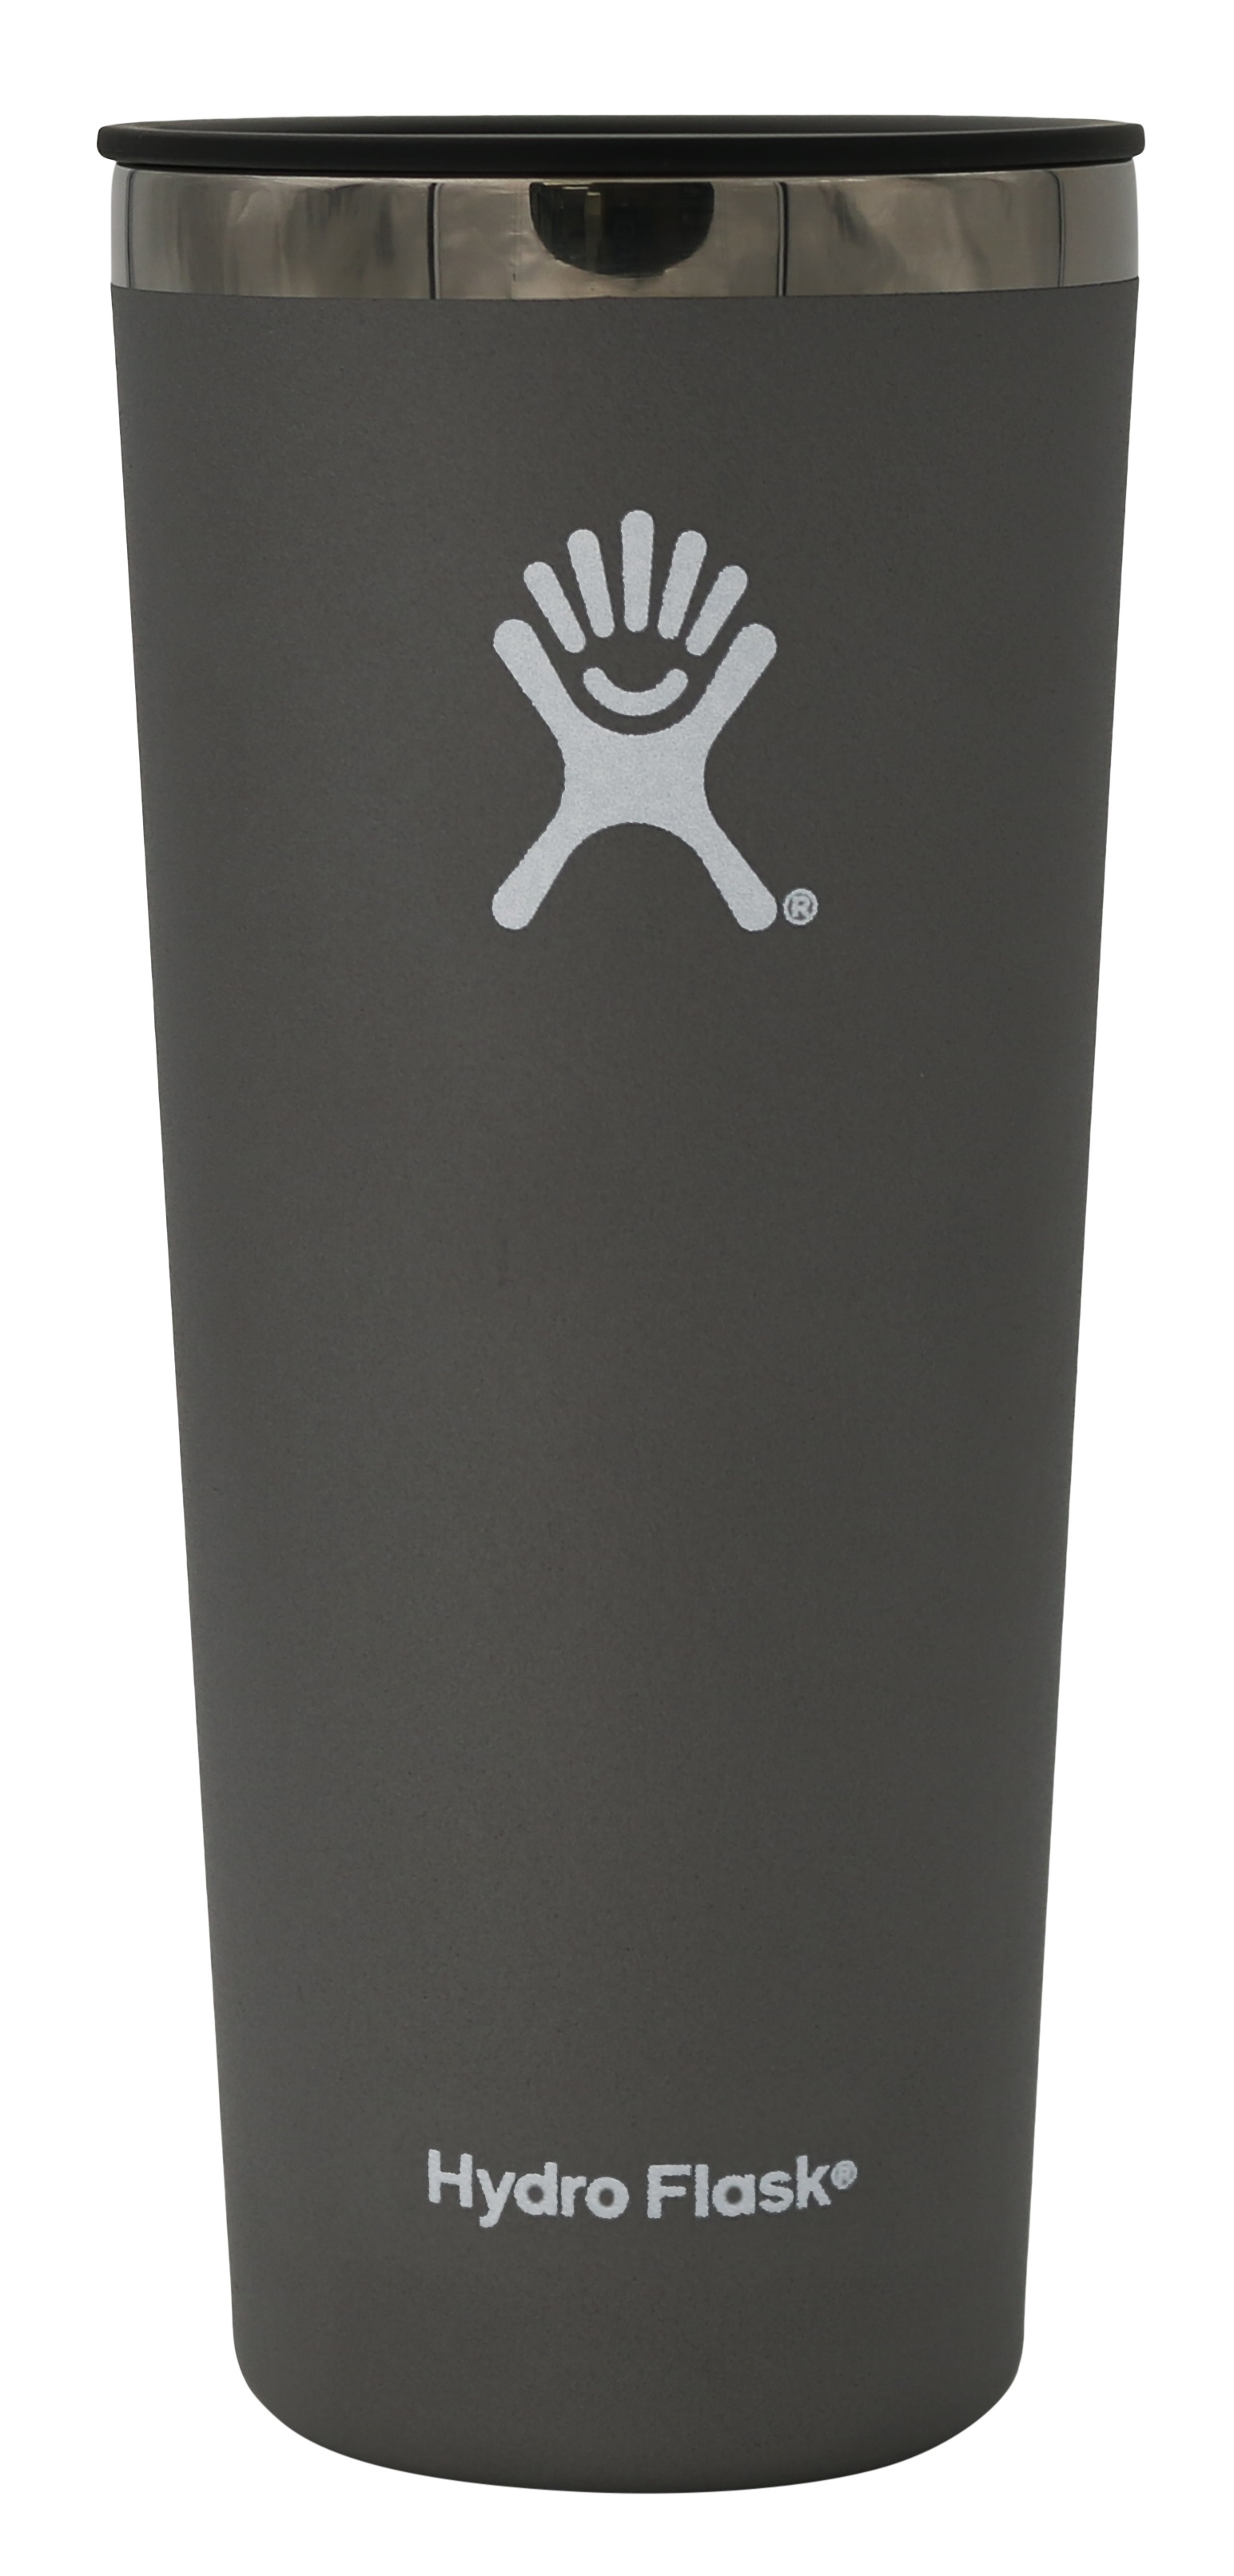 Hydro Flask 22 oz Insulated Travel Tumbler Cup - Graphite